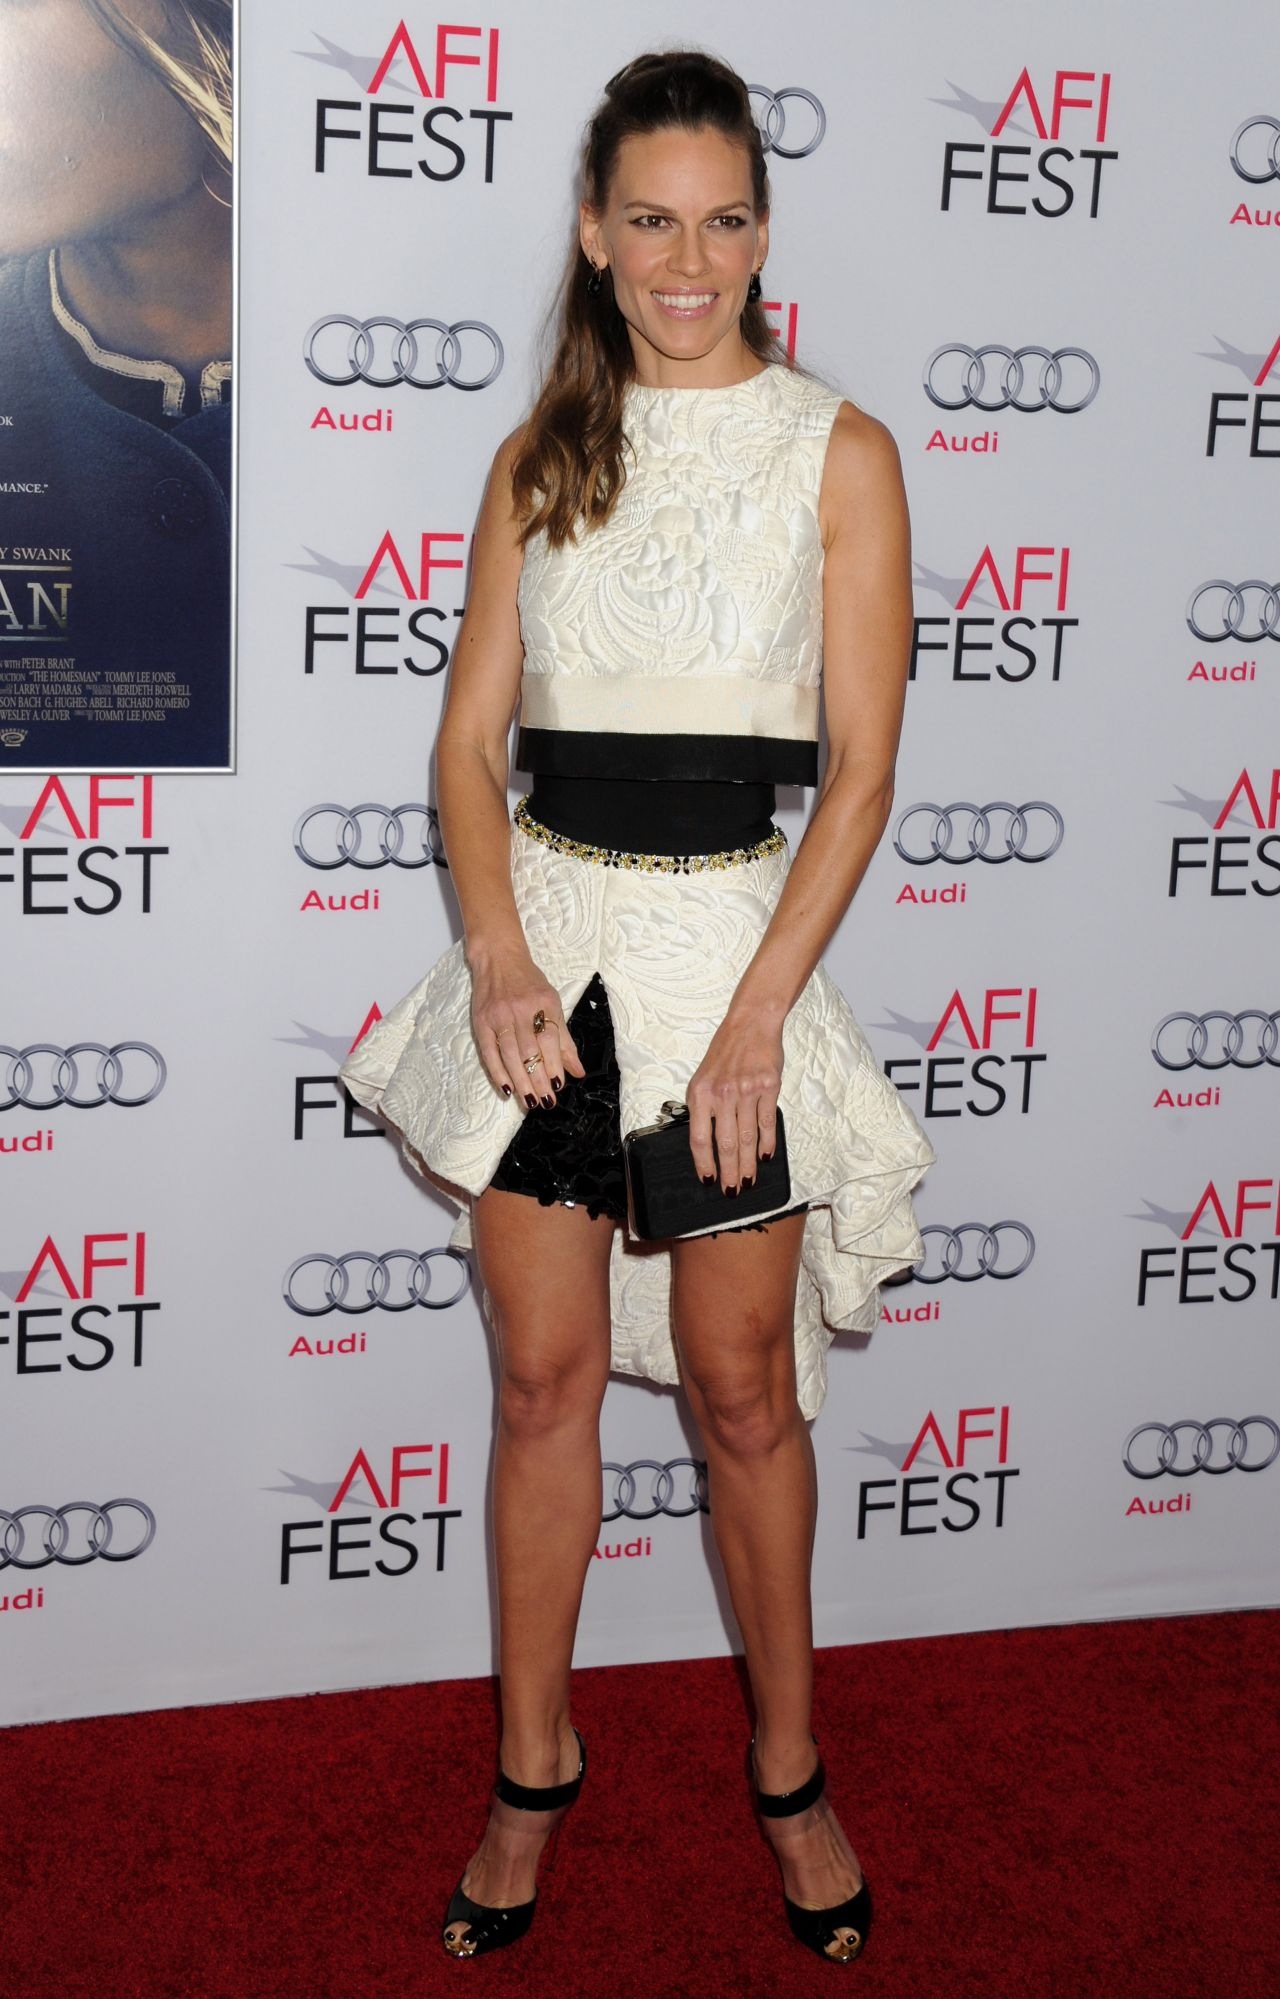 hilary-swank-the-homesman-premiere-in-hollywood-afi-fest-2014_2